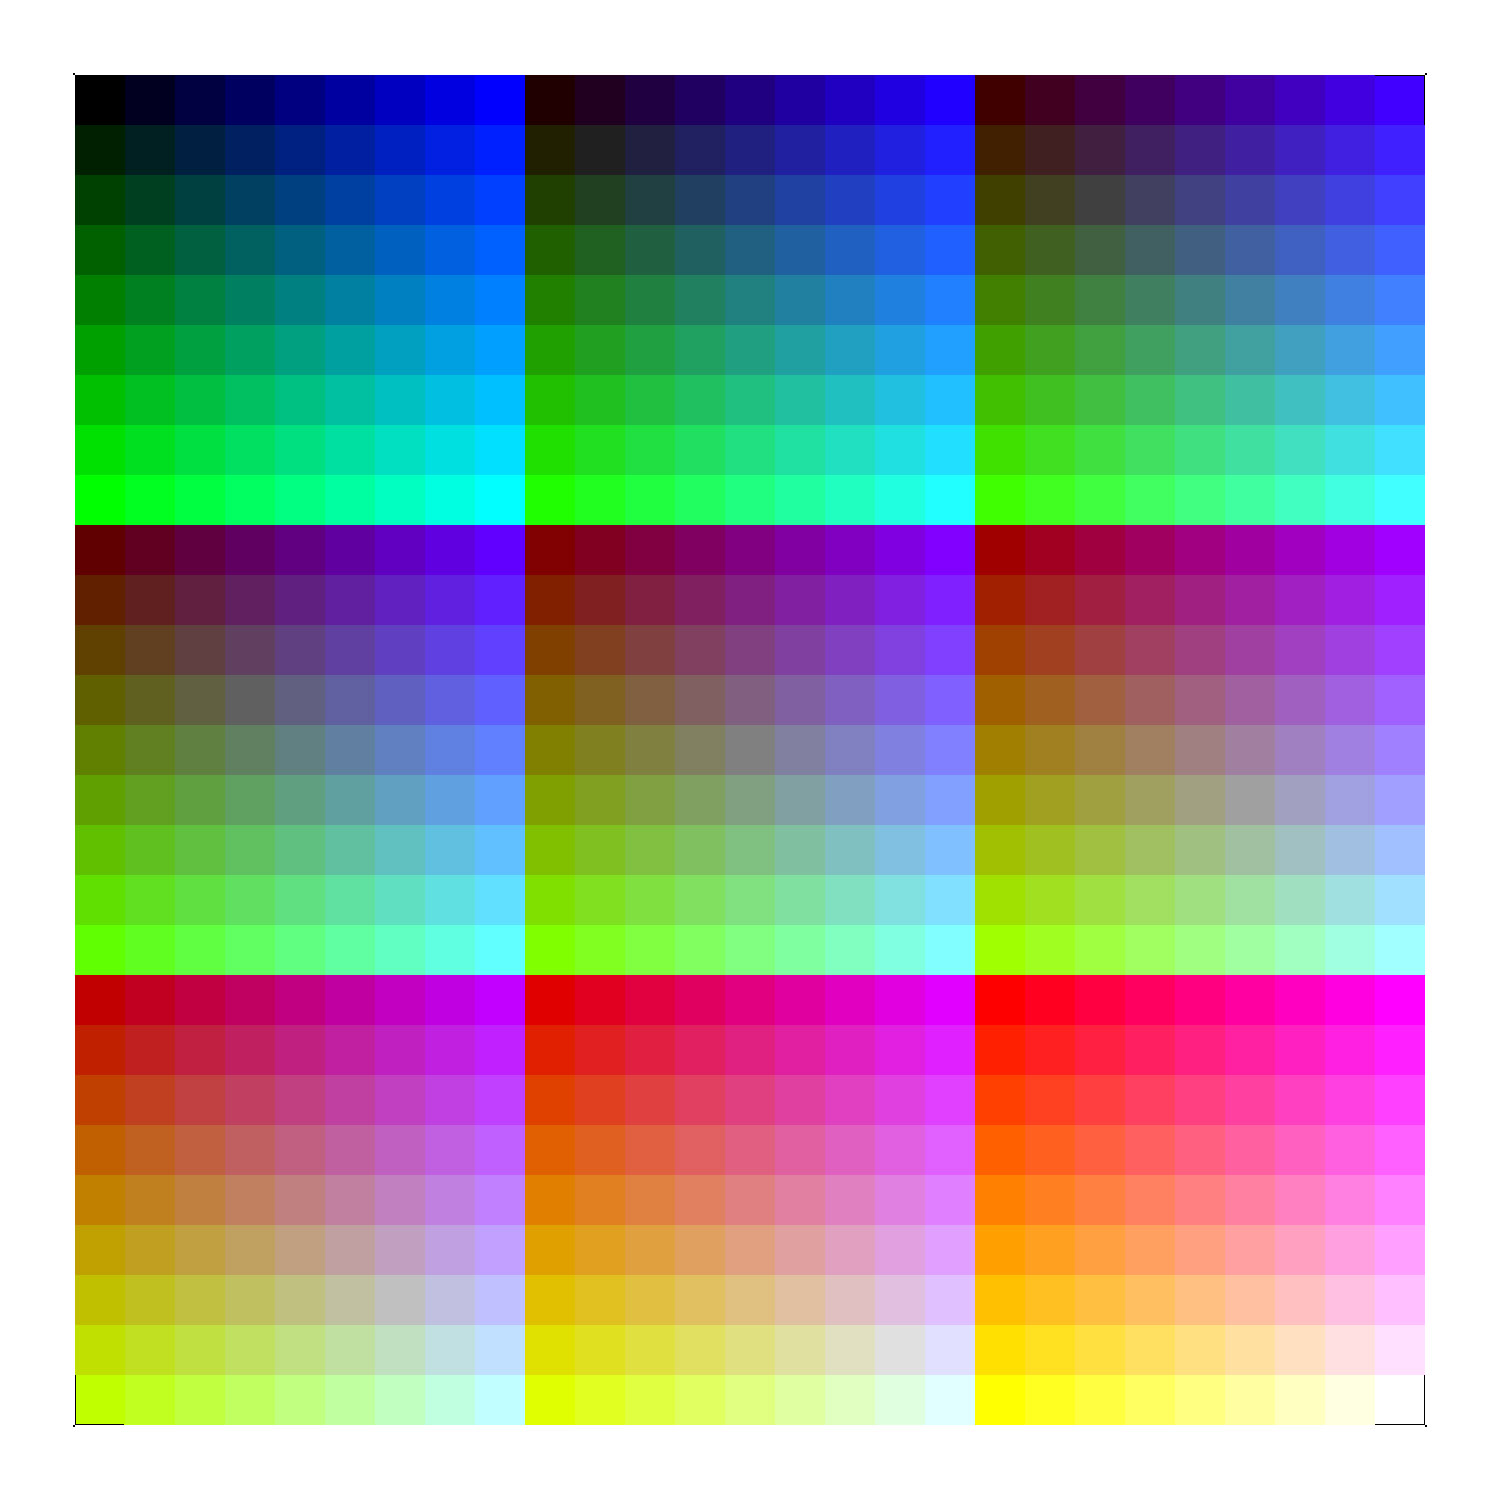 printer color charts - Mersn.proforum.co